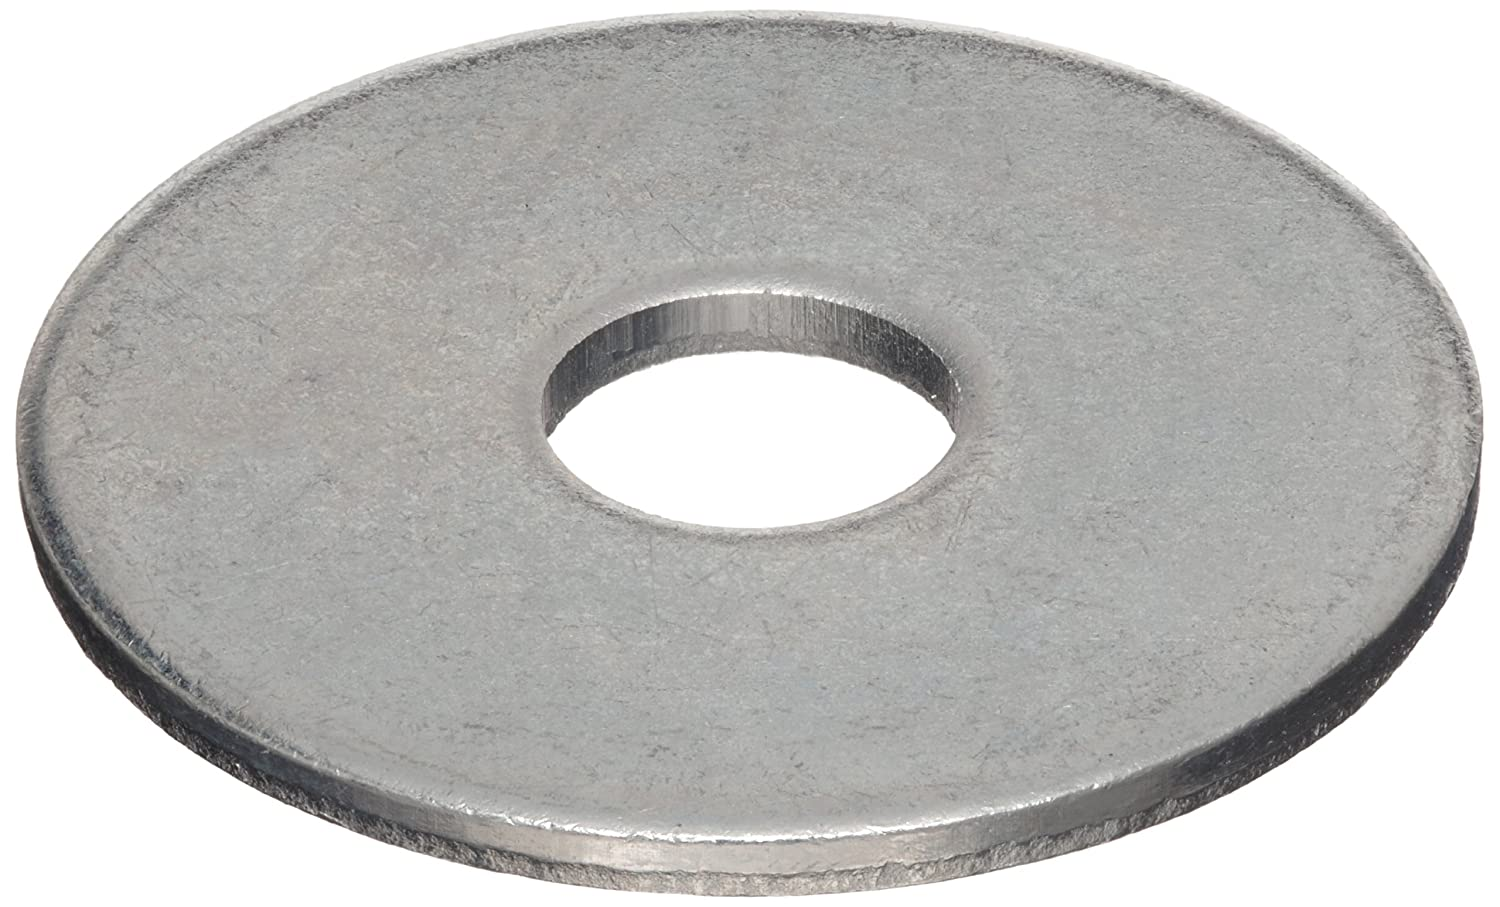 Made in US Zinc Plated Finish 0.101 Nominal Thickness 0.531 ID 1.750 OD 0.101 Nominal Thickness Accurate Manufacturing WASB12WZ #2 Hole Size Steel Type B Flat Washer Pack of 10 1.750 OD 0.531 ID